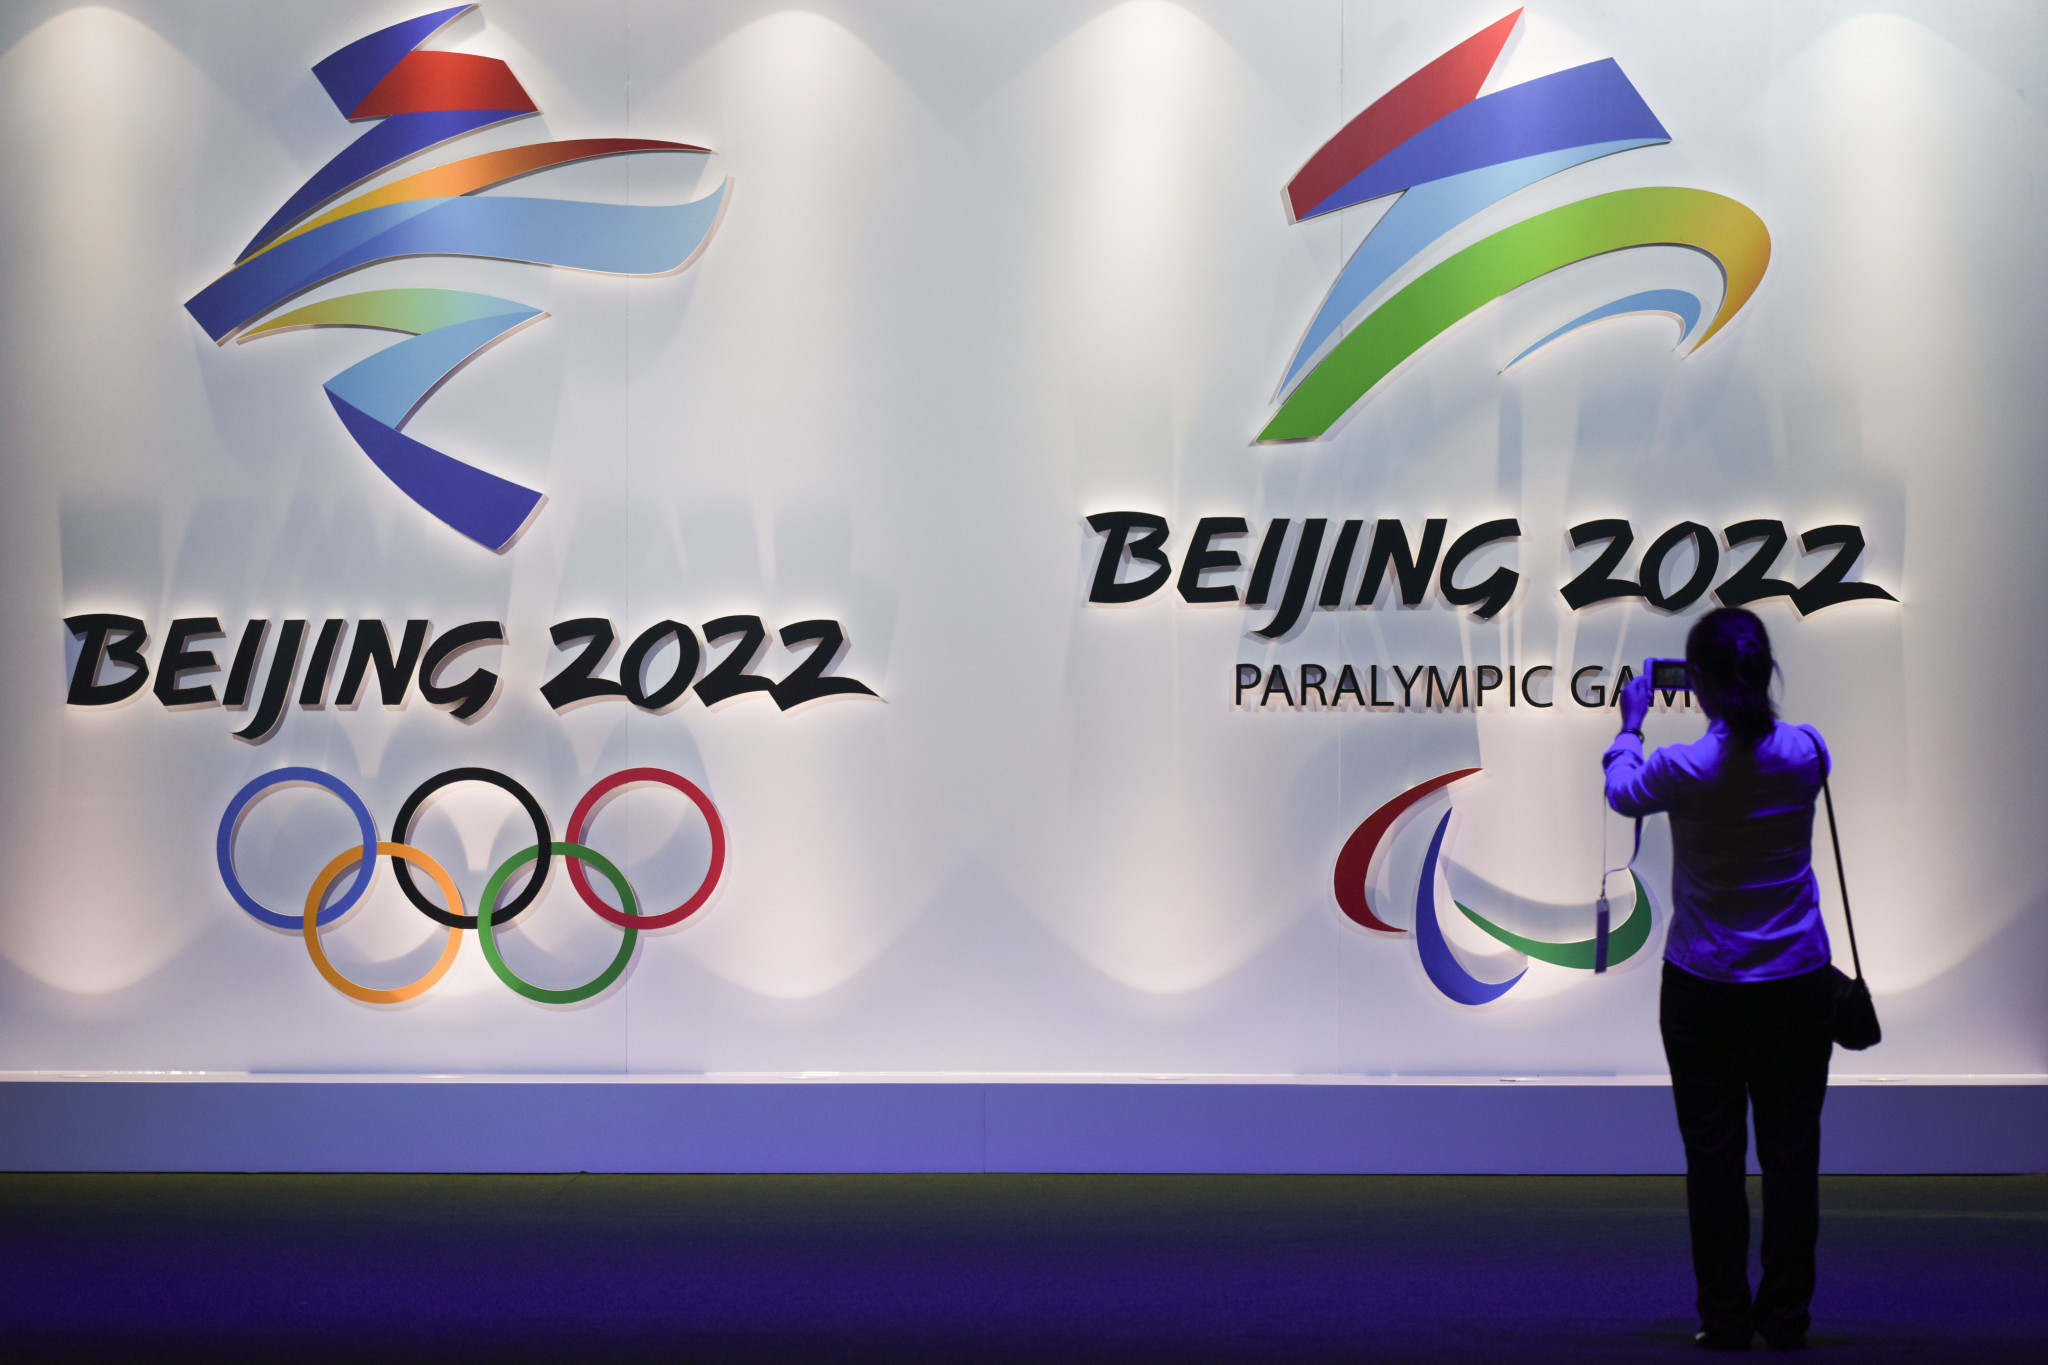 Beijing 2022's progress will be assessed during the IOC Coordination Commission's two-day visit ©Getty Images